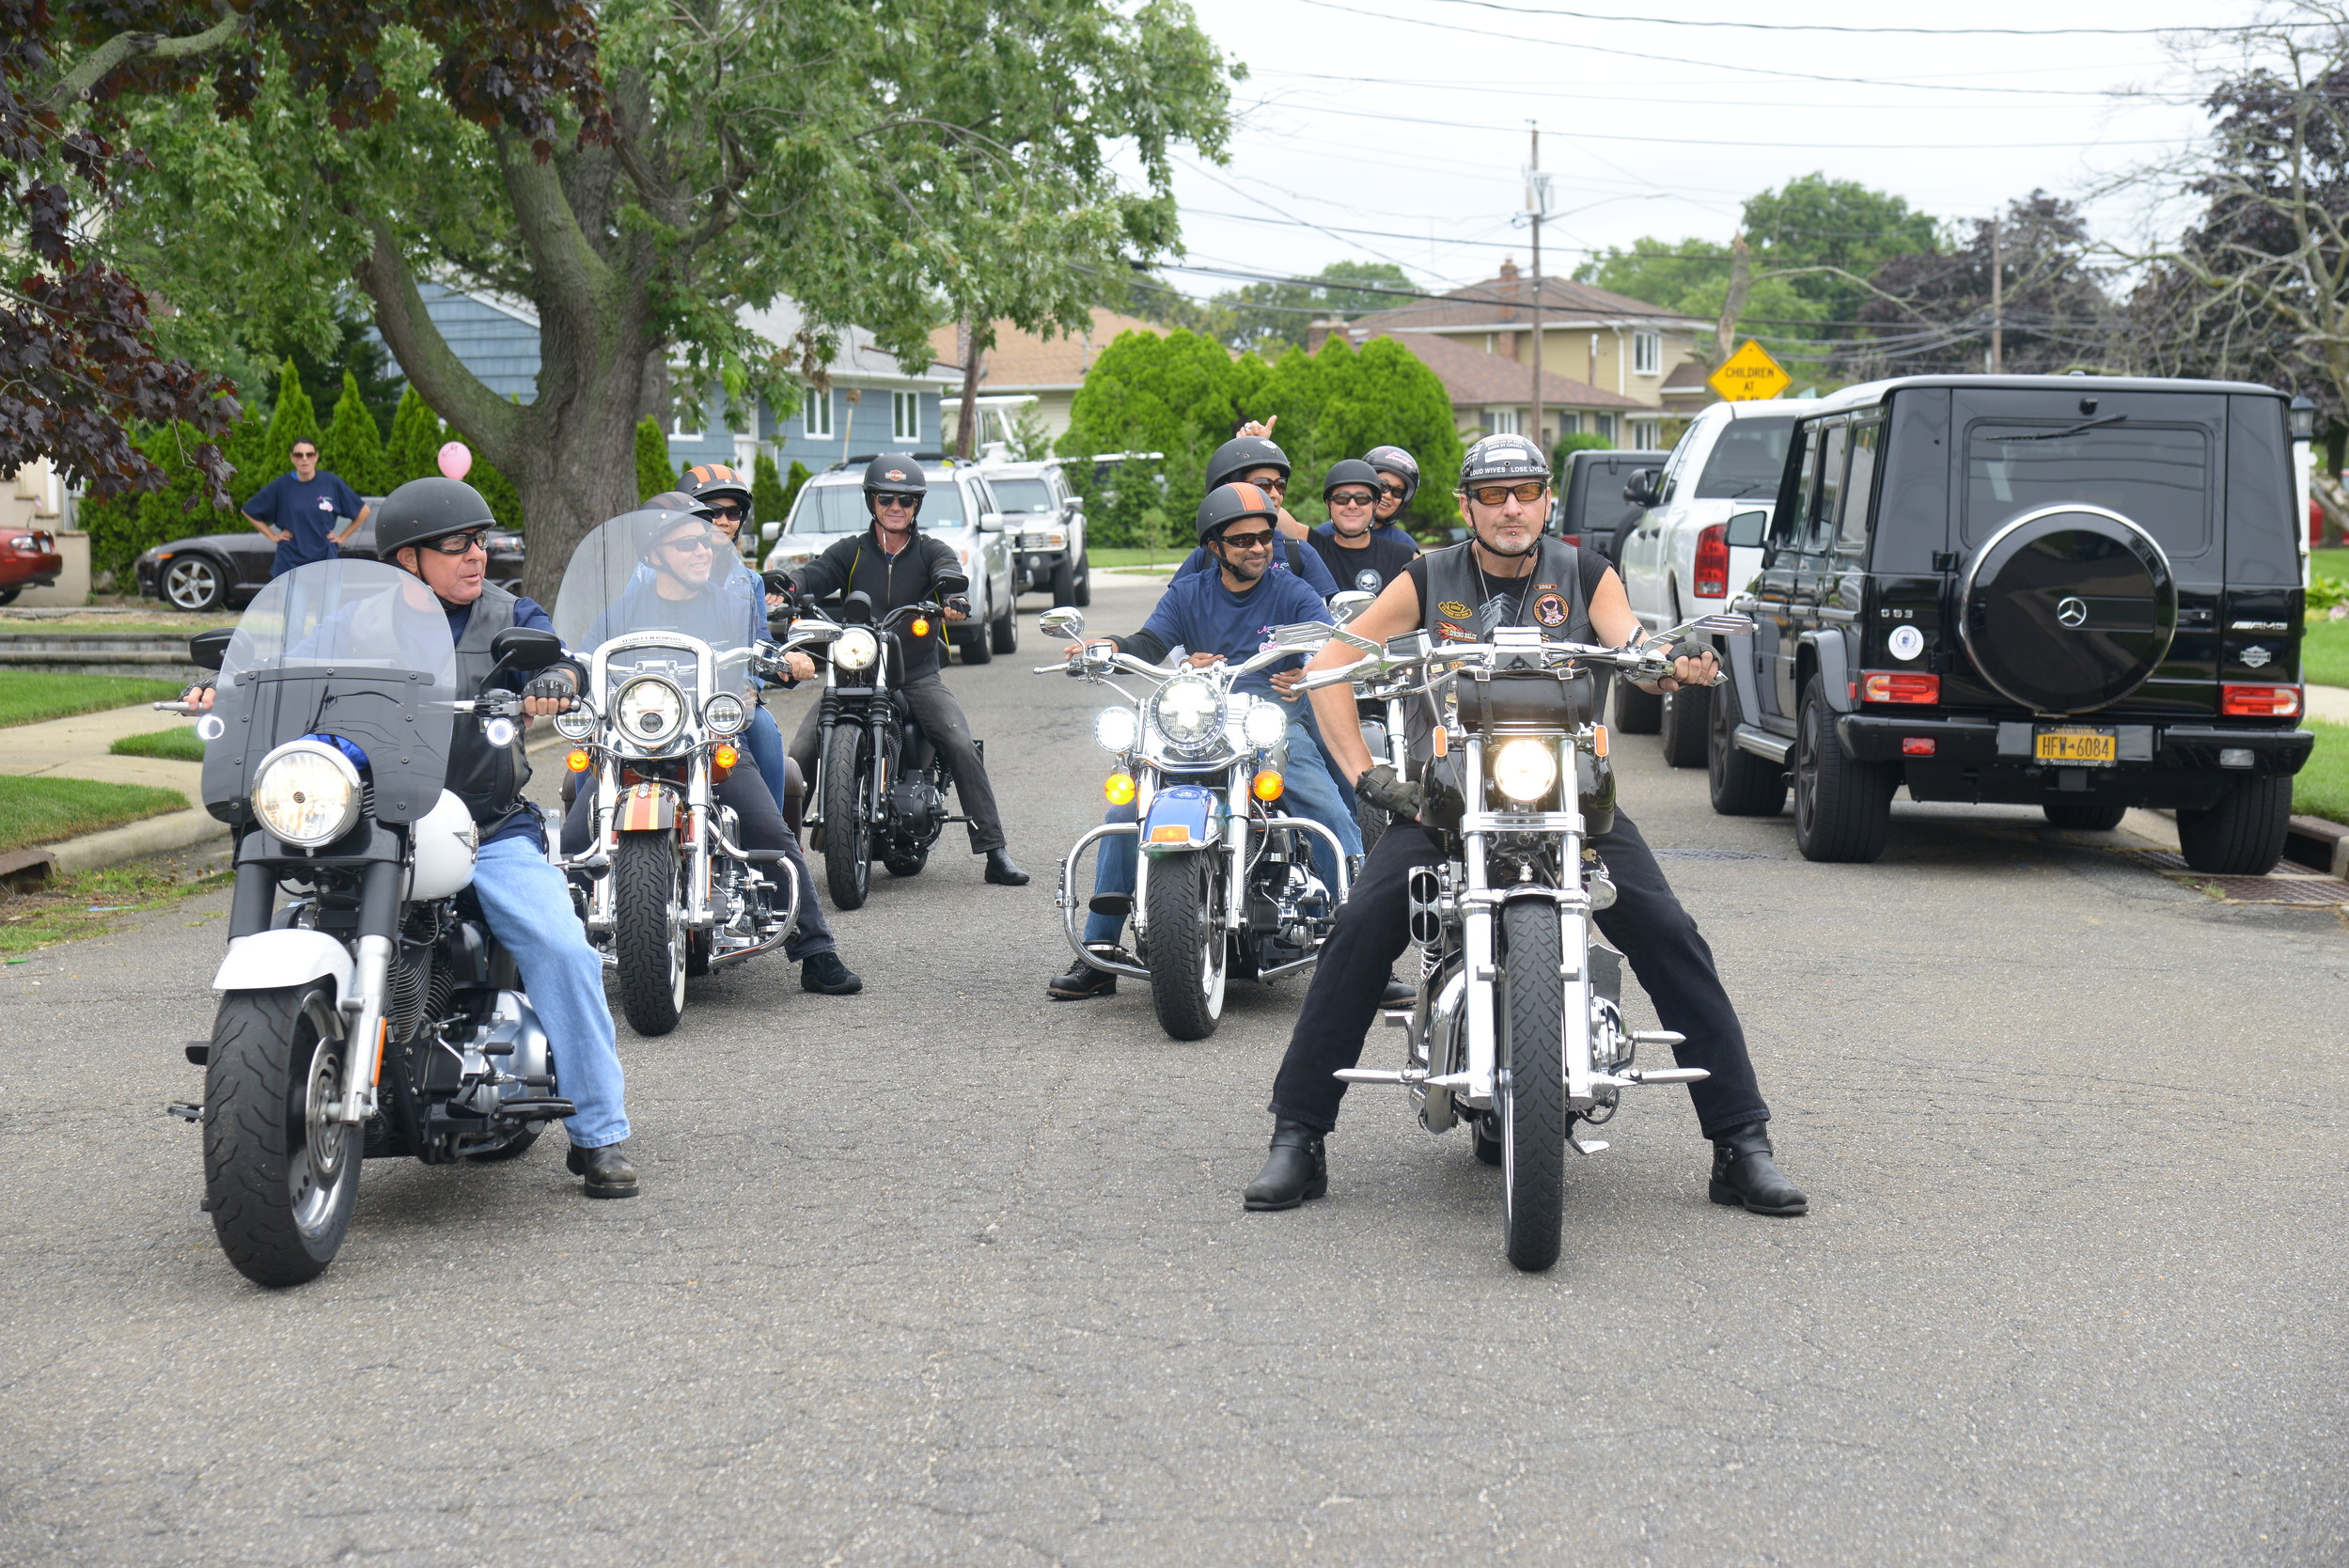 The riders set off from Oceanside